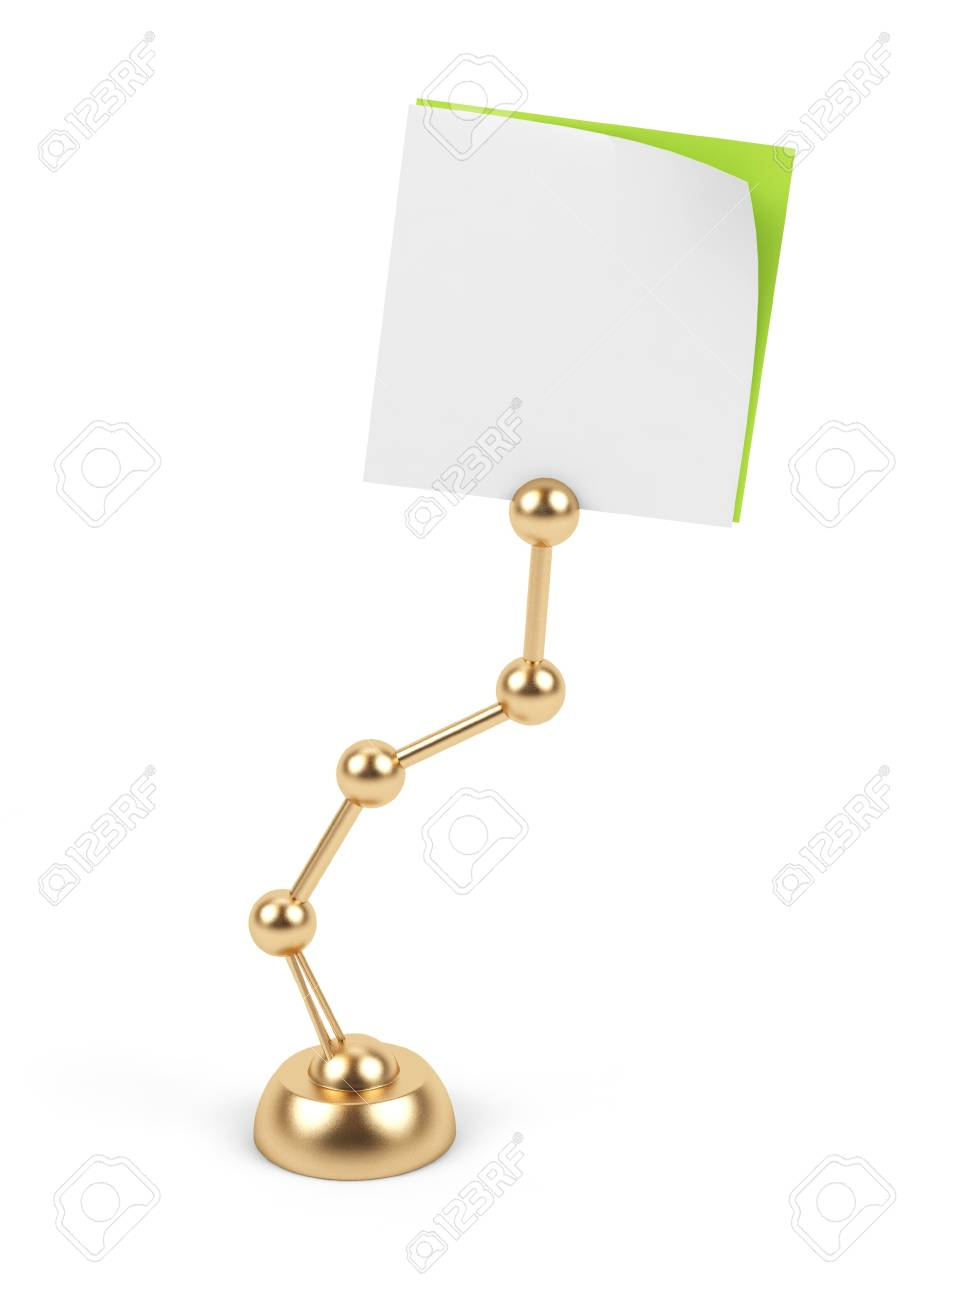 Stand with card on a white background. Stock Photo - 15536320